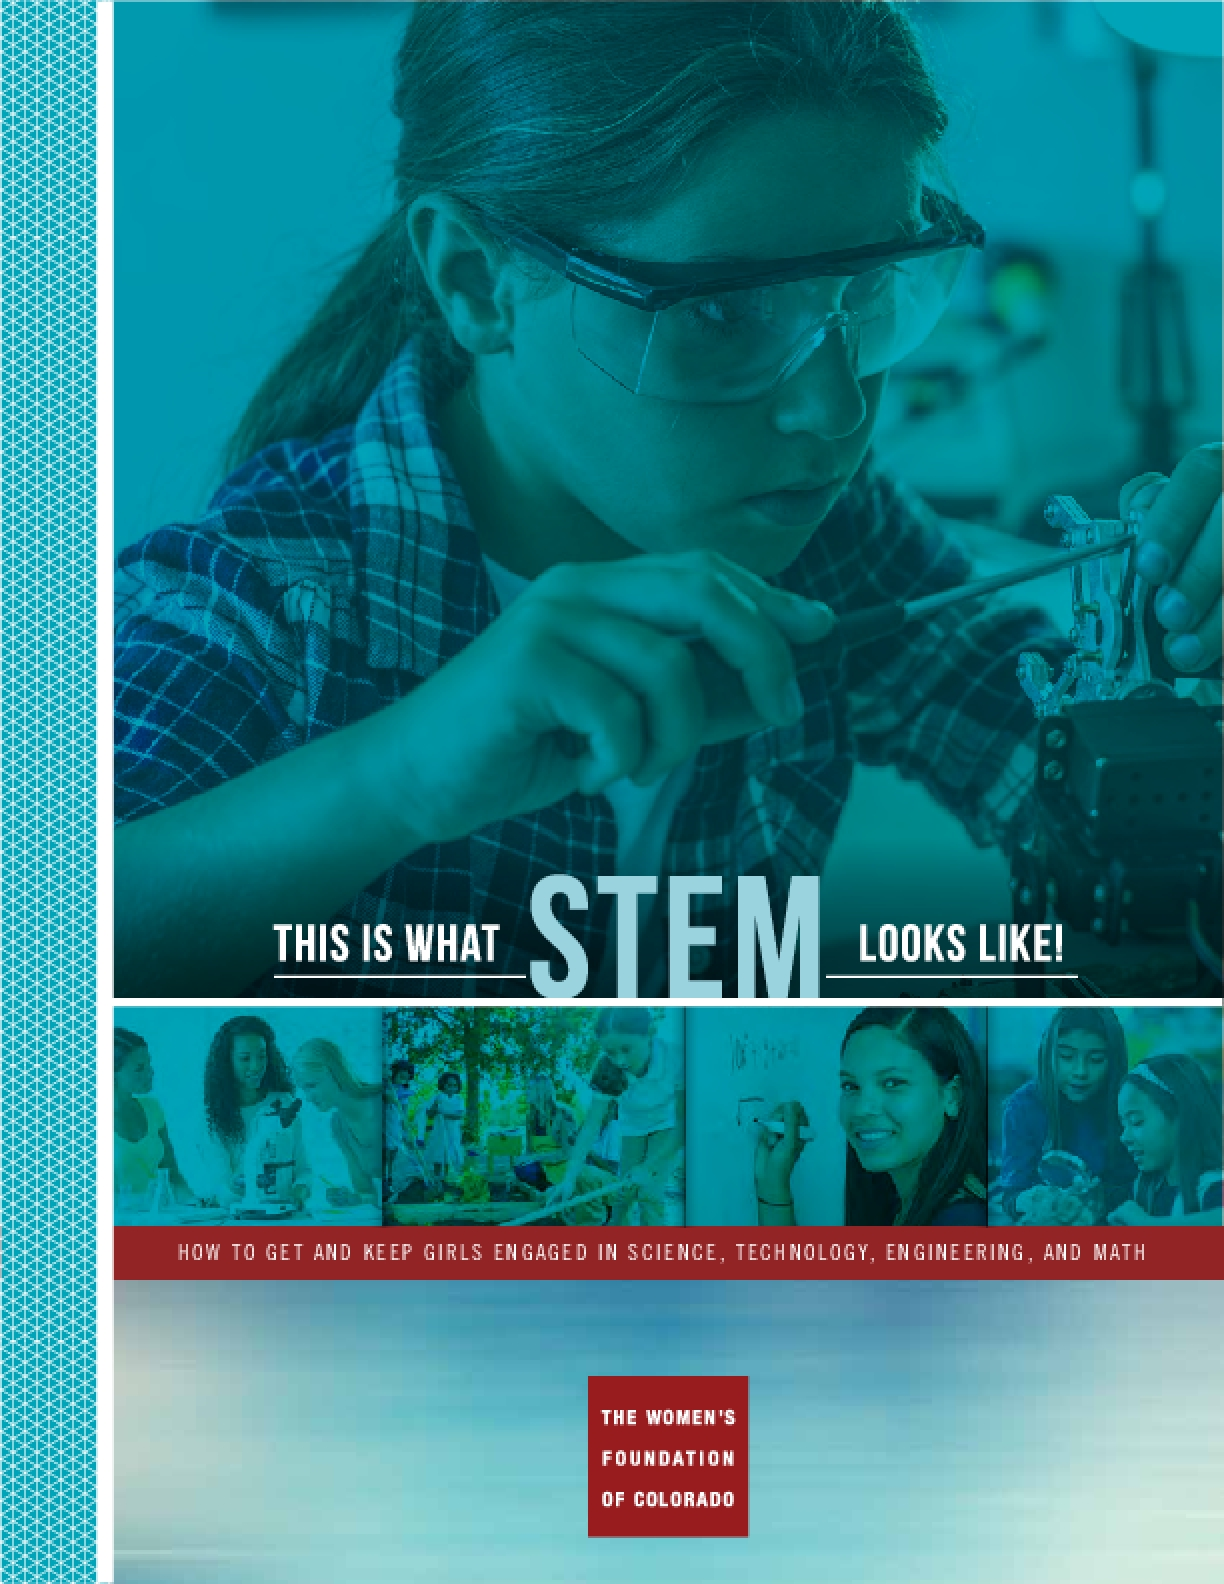 This is What Stem Looks Like! How to Get and Keep Girls Engaged in Science, Technology, Engineering, and Math